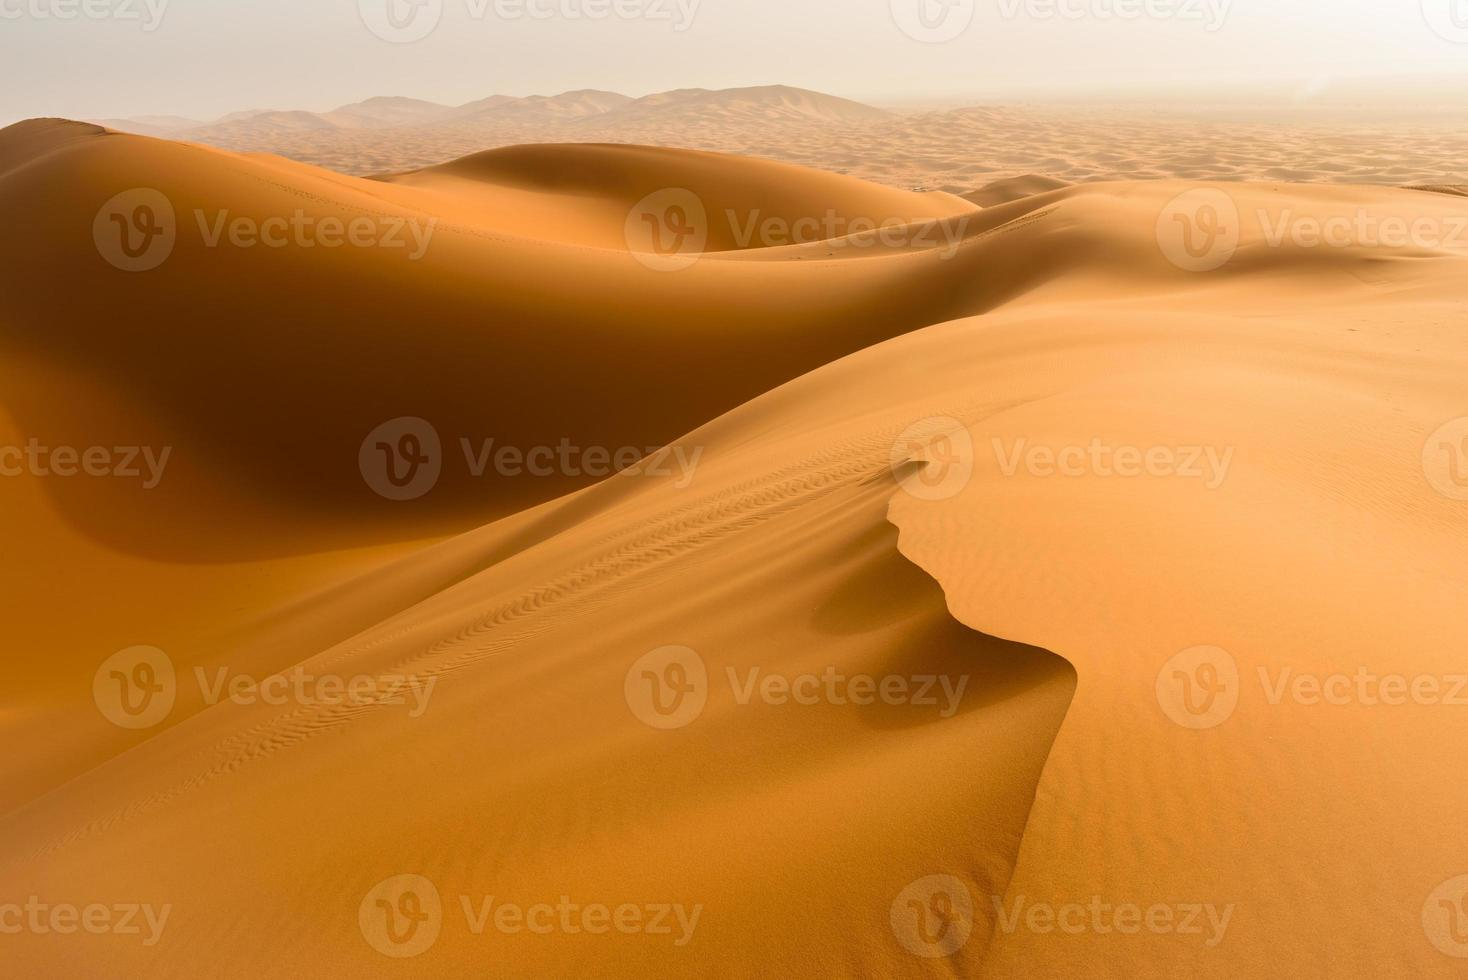 Sand dunes in the Sahara Desert, Merzouga, Morocco photo